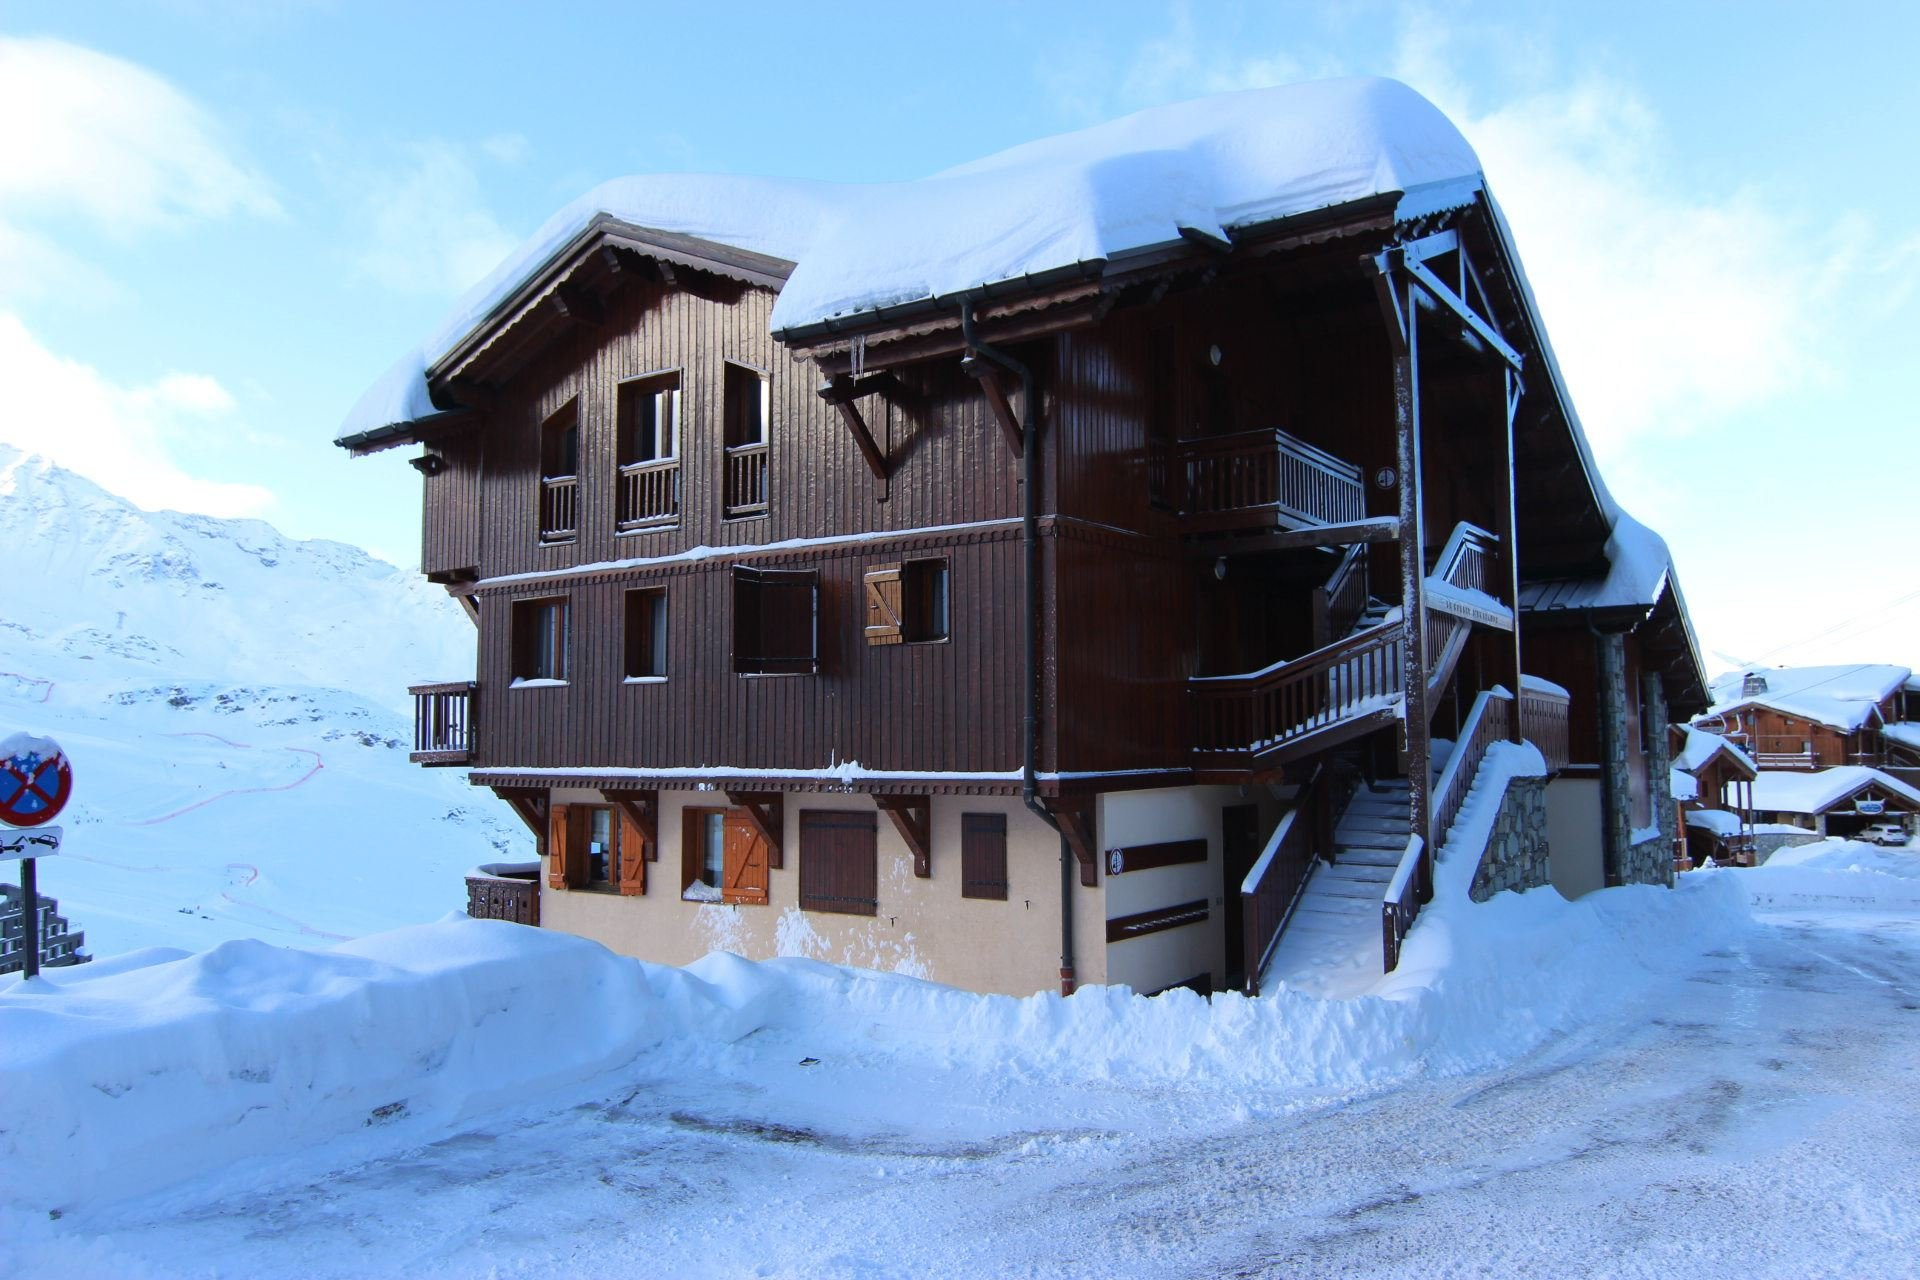 CHALET EMERAUDE 5 / APPARTEMENT 4 PIECES MEZZANINE 8 PERSONNES - 3 FLOCONS OR - VTI